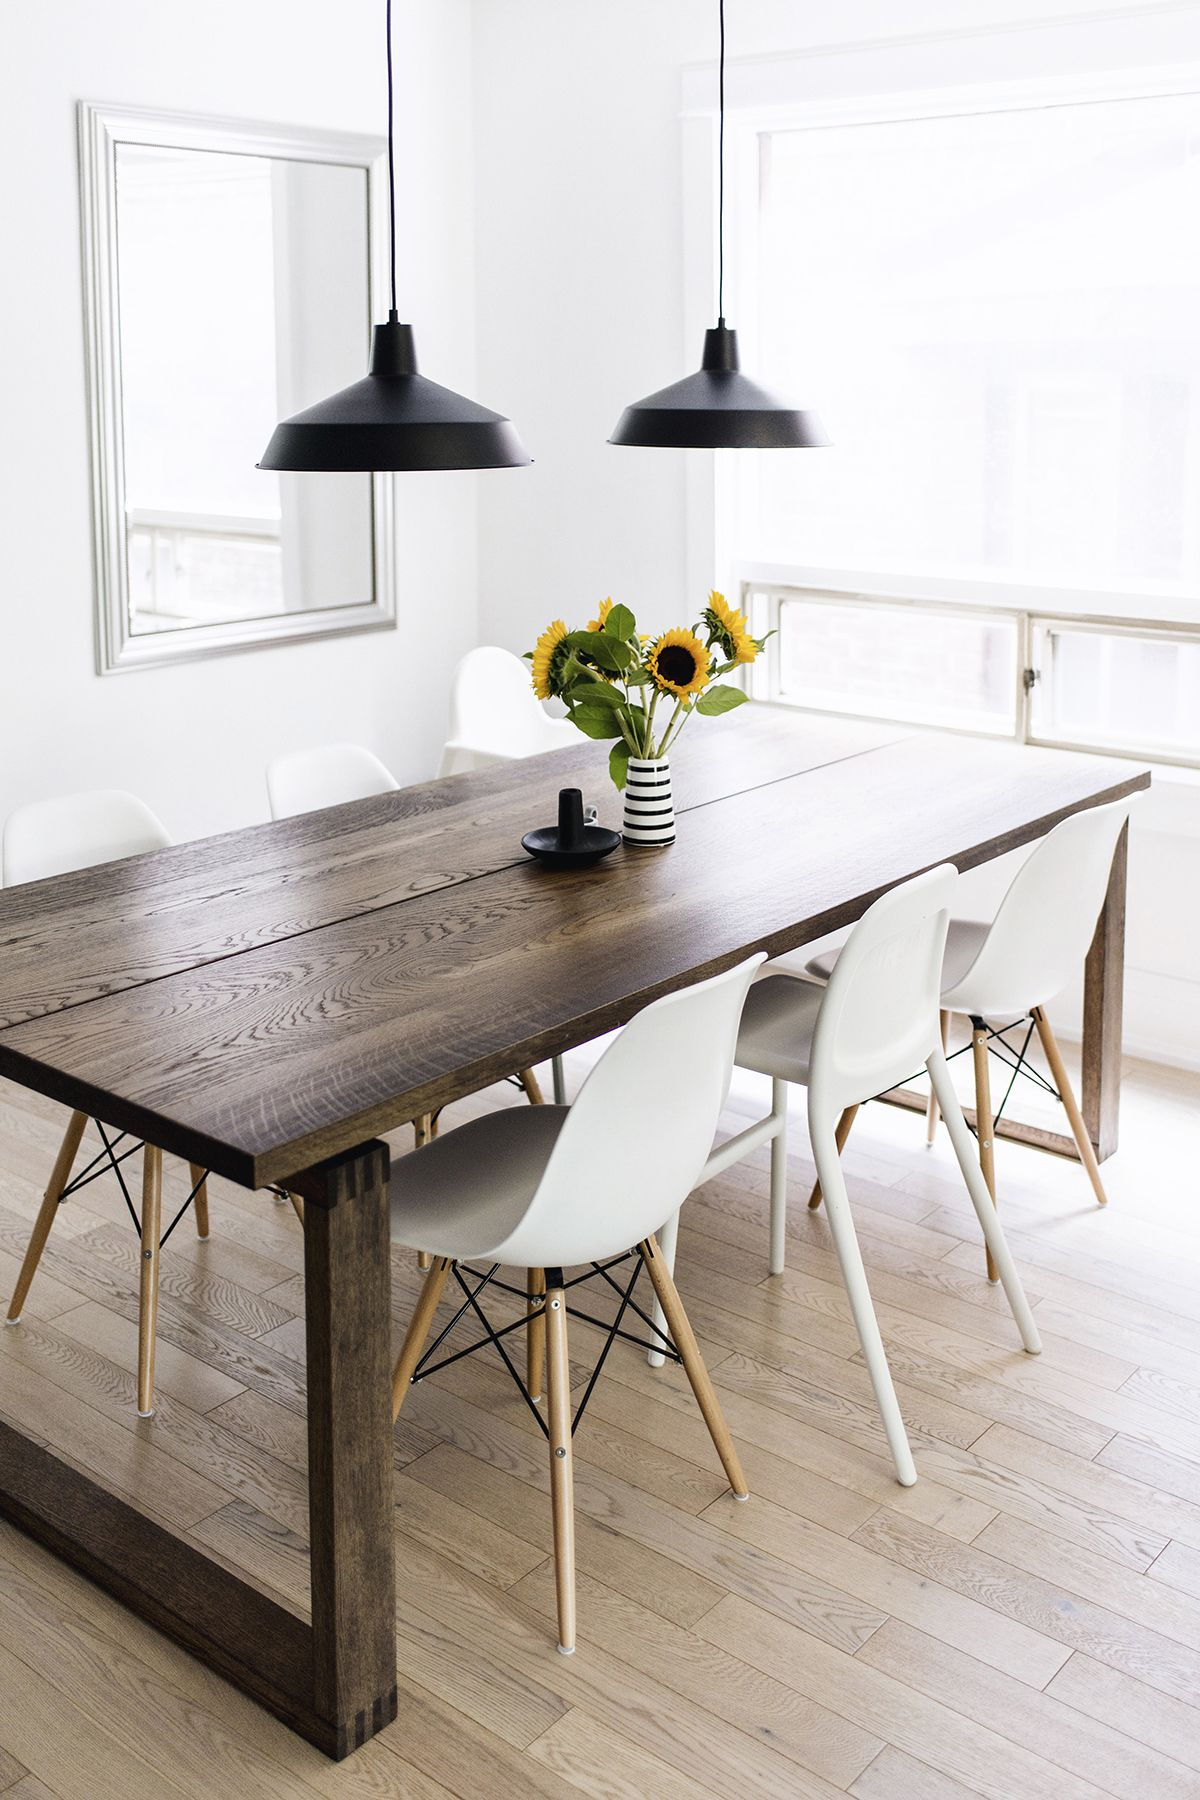 Scandinavian-inspired dining room - Mörbylånga table, Eames chairs ...